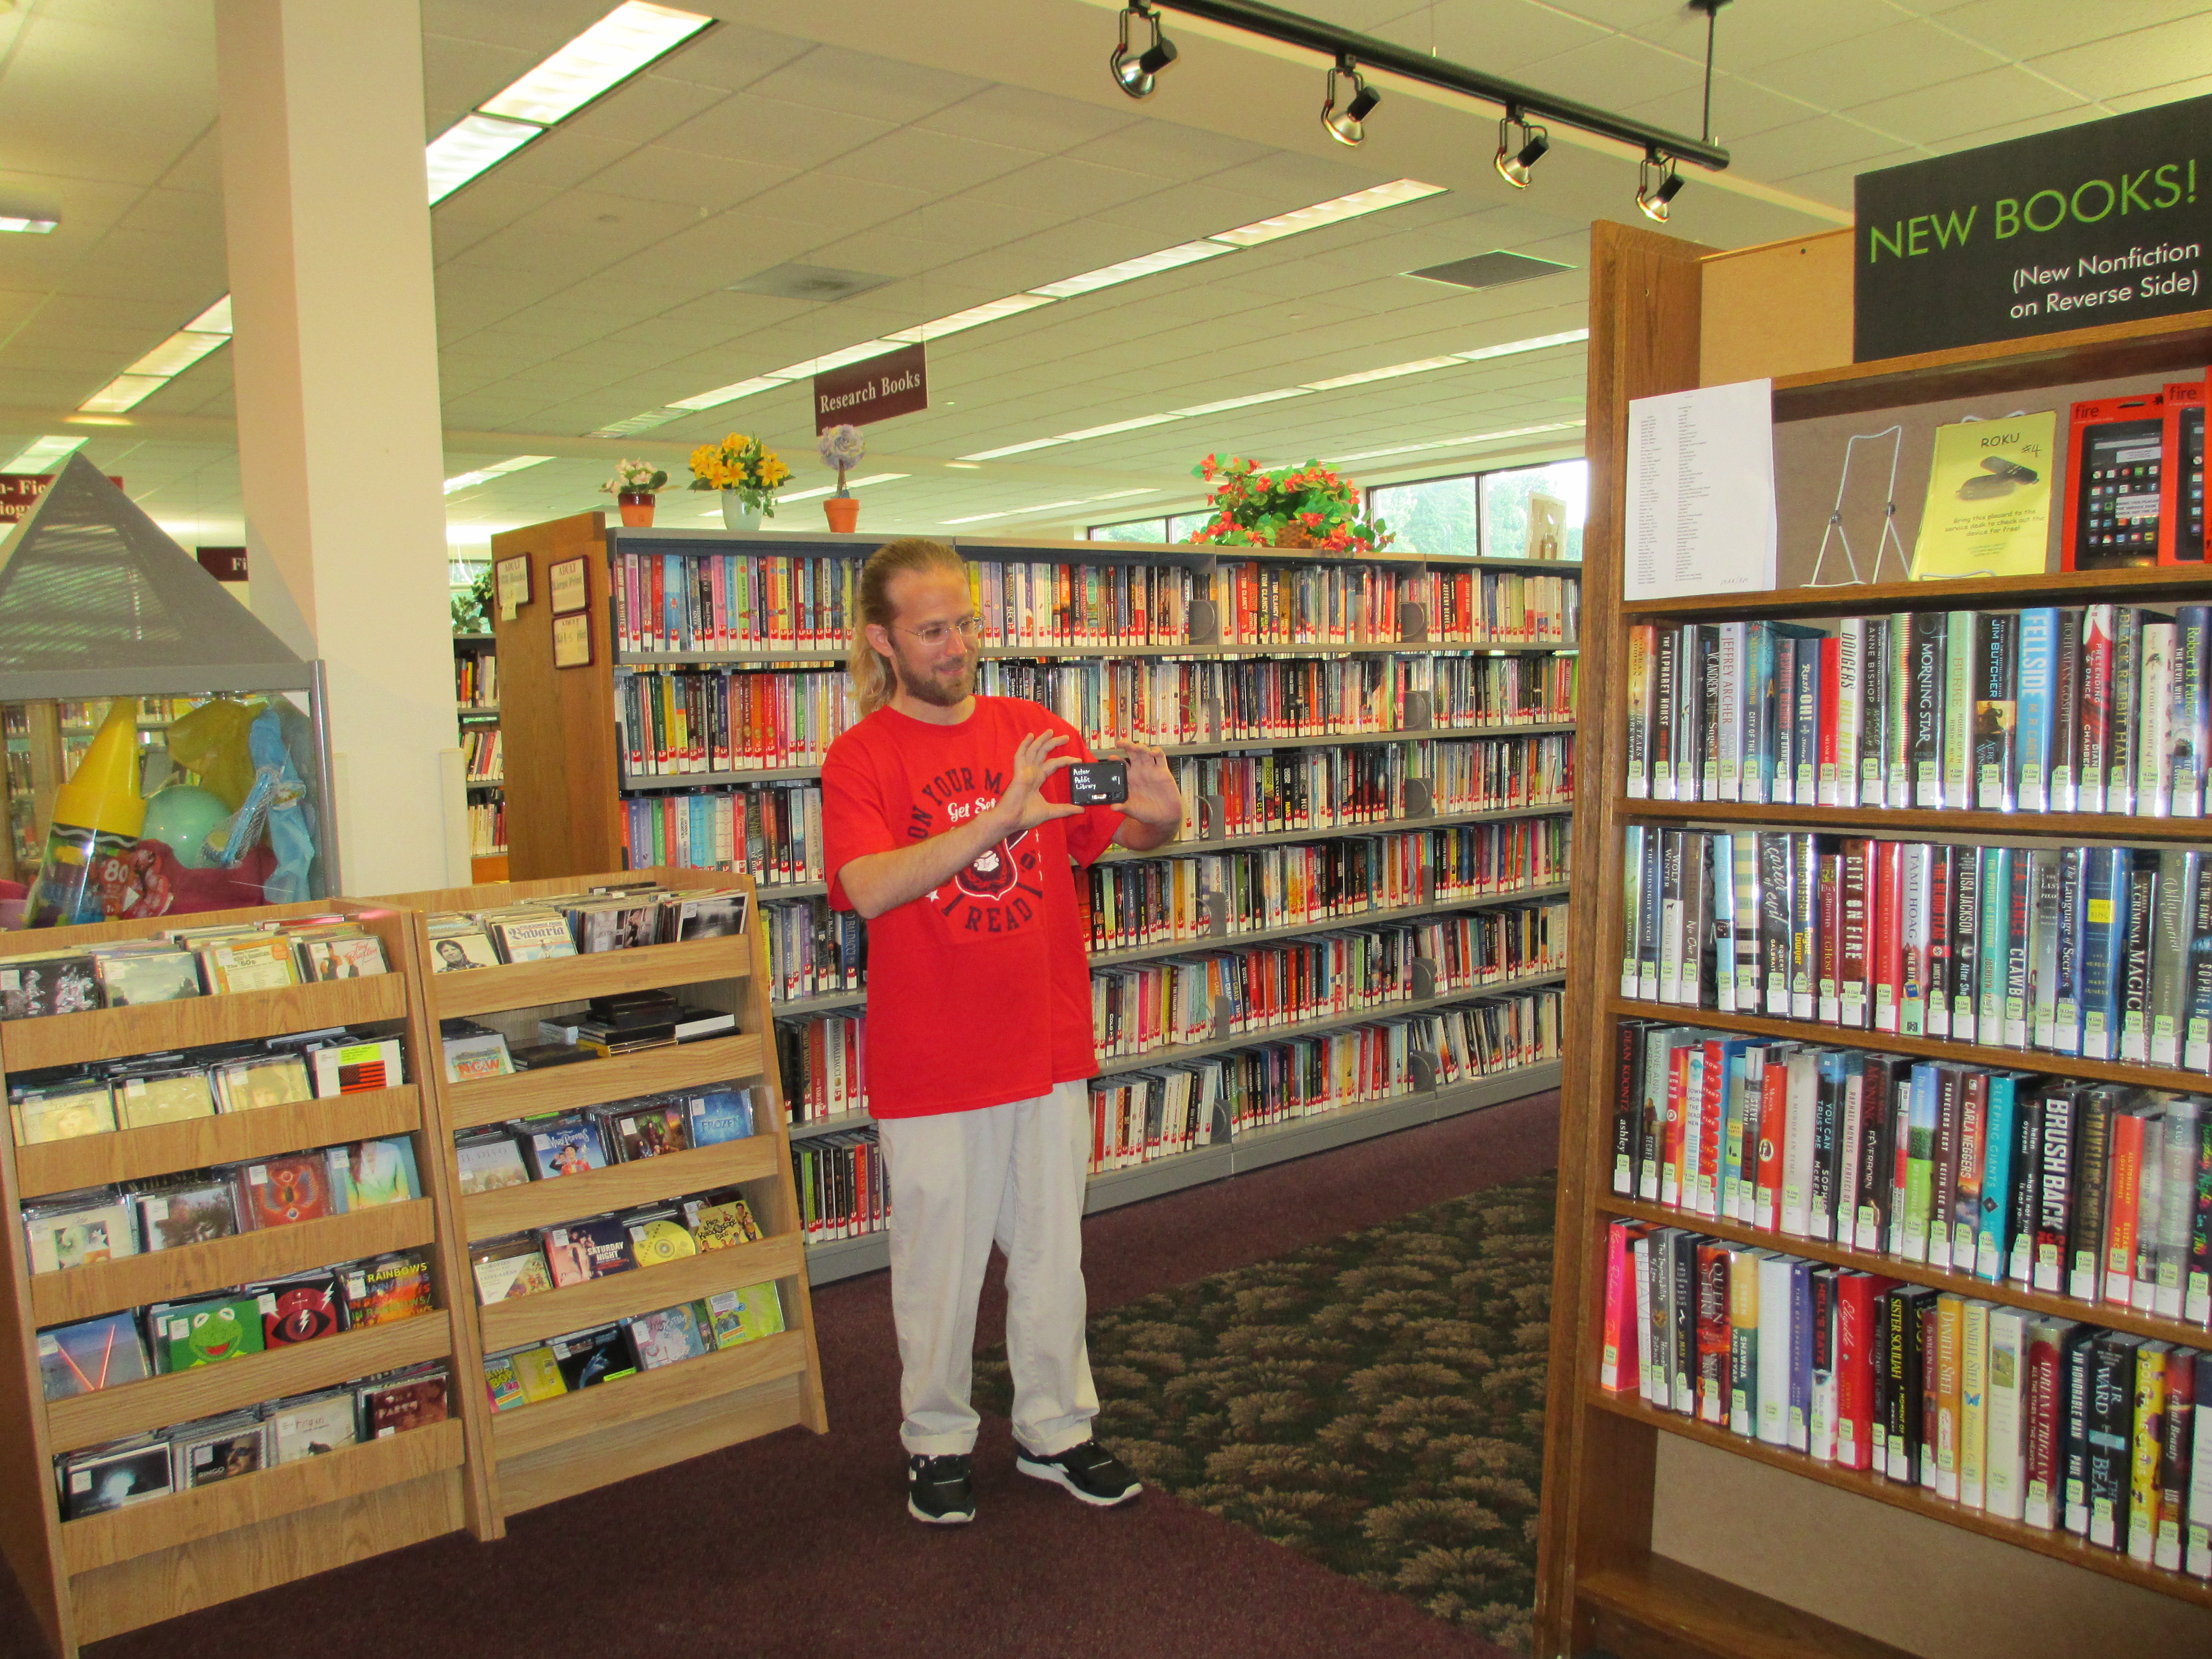 Computer and Internet Access - Dexter District Library |Internet Public Library